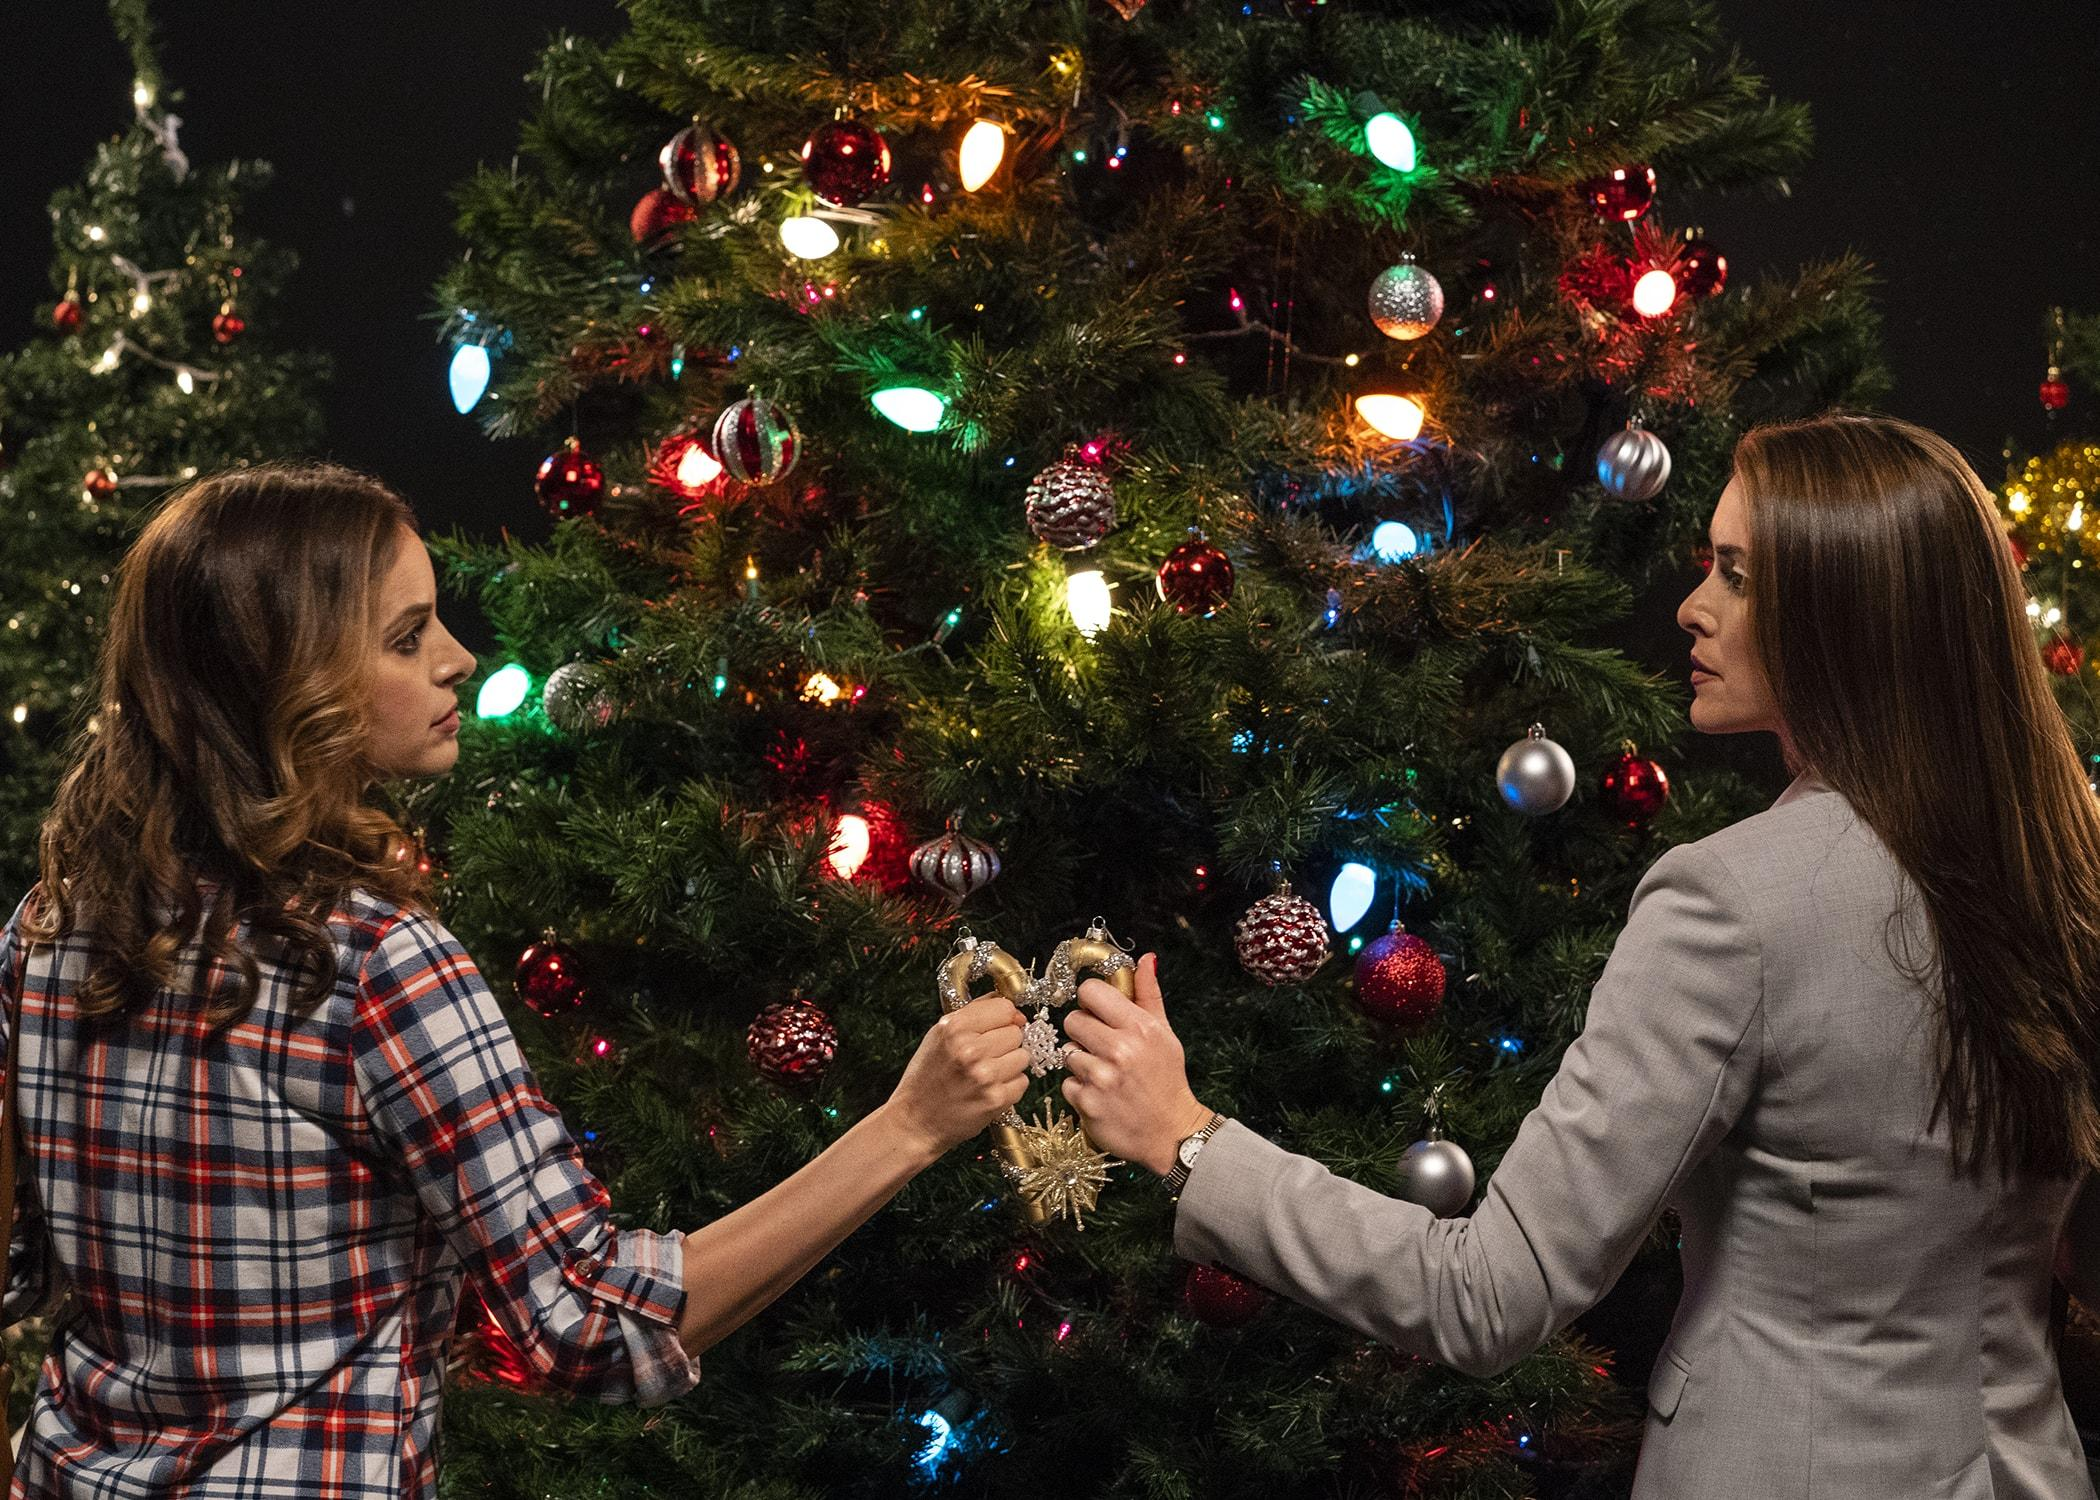 New UPtv Christmas Movies 2018 Schedule: List Of Network's